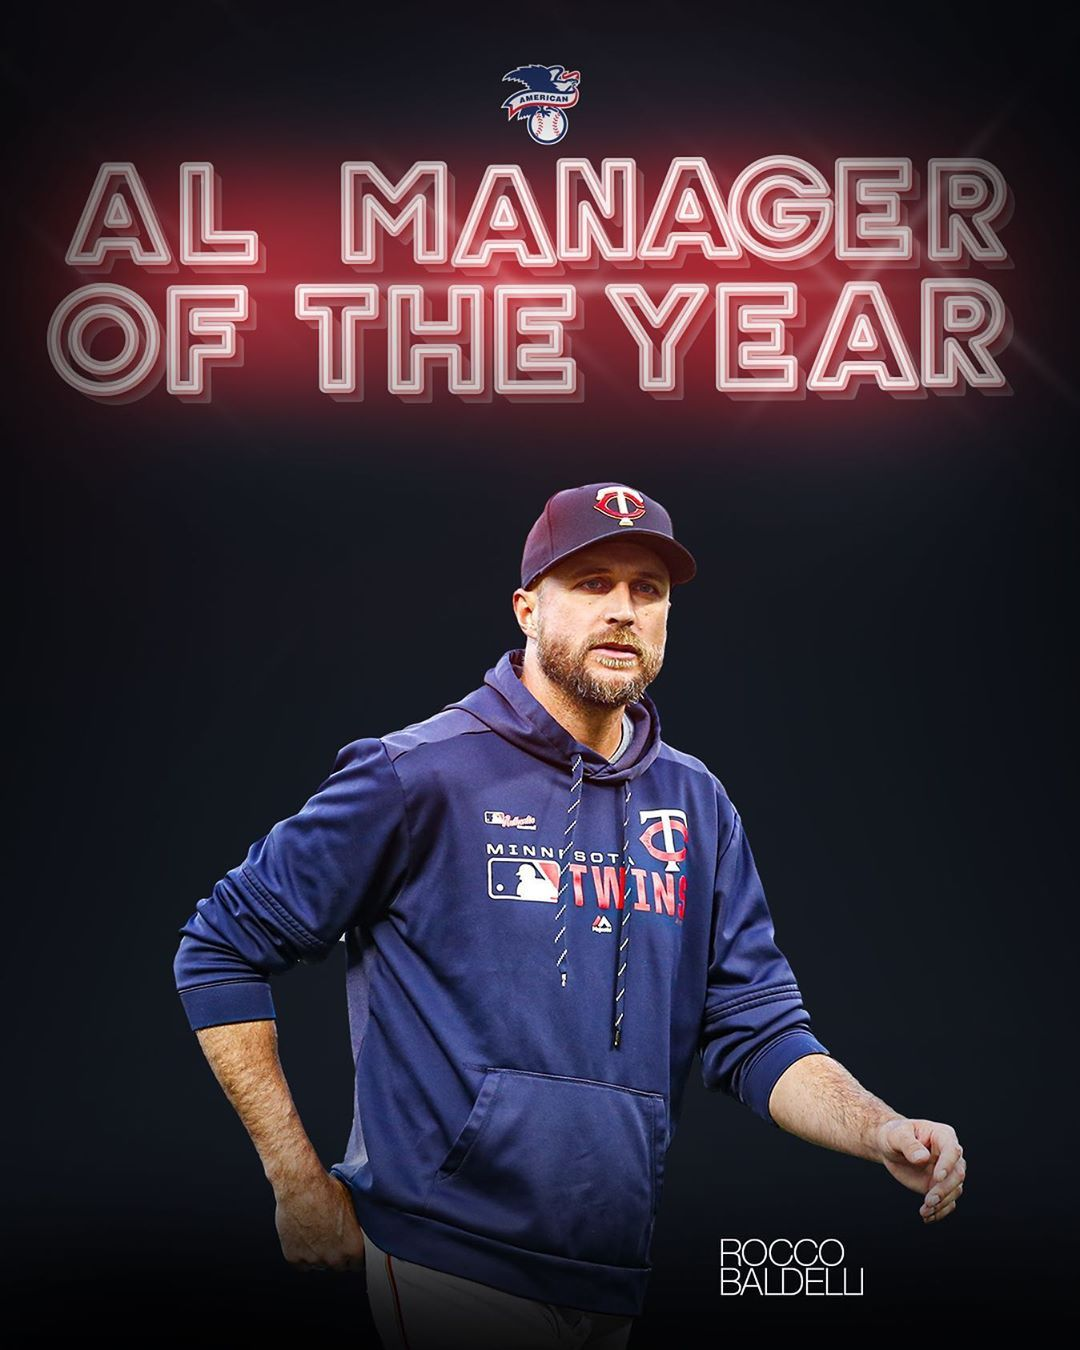 Mlb your al manager of the year rocco baldelli sports